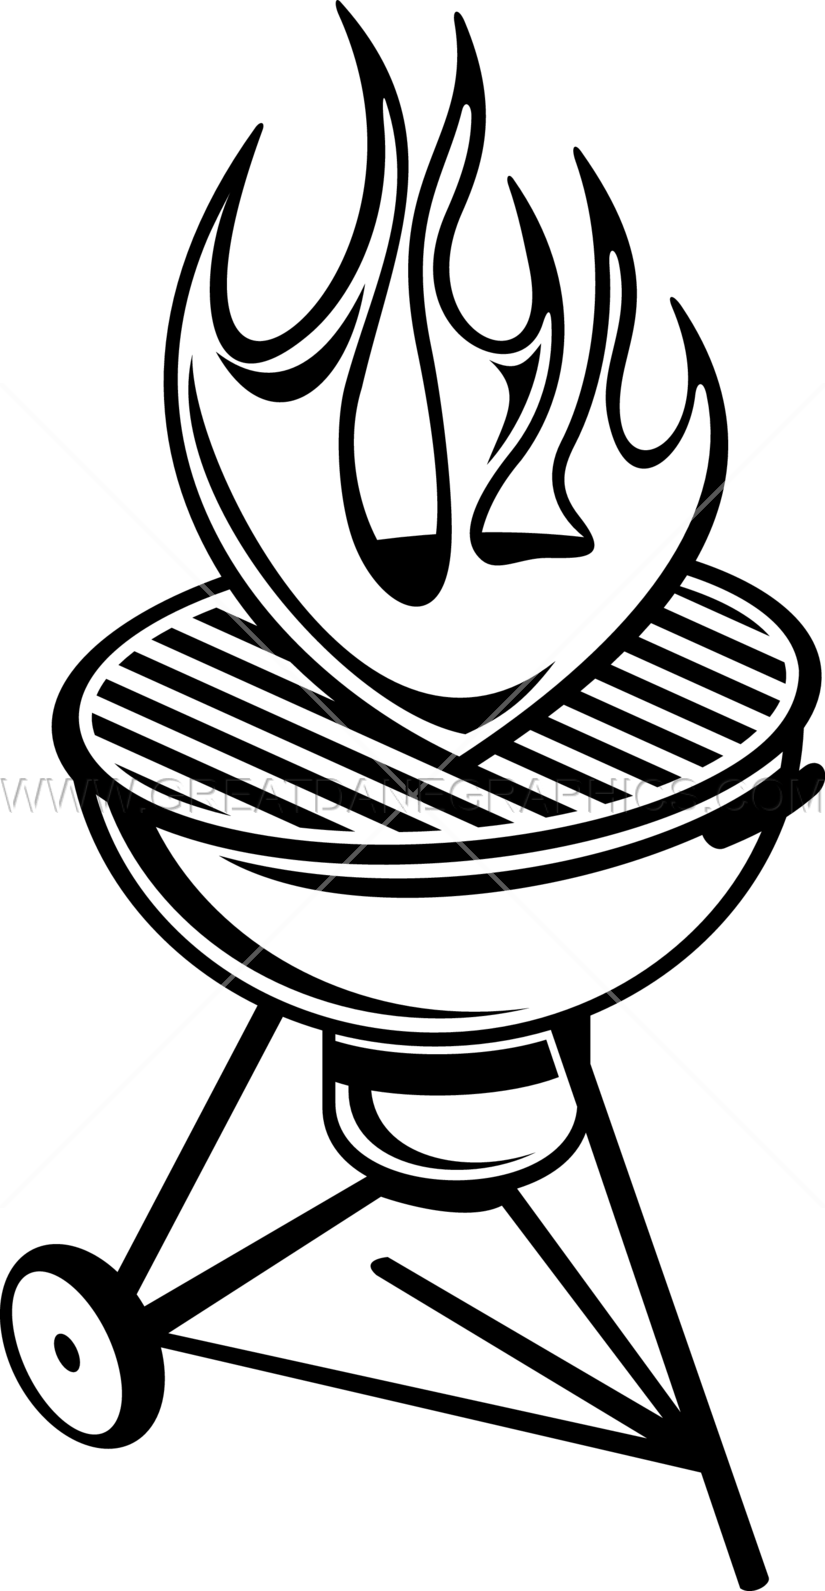 royalty free download Barbecue drawing at getdrawings. Grill clipart drawn